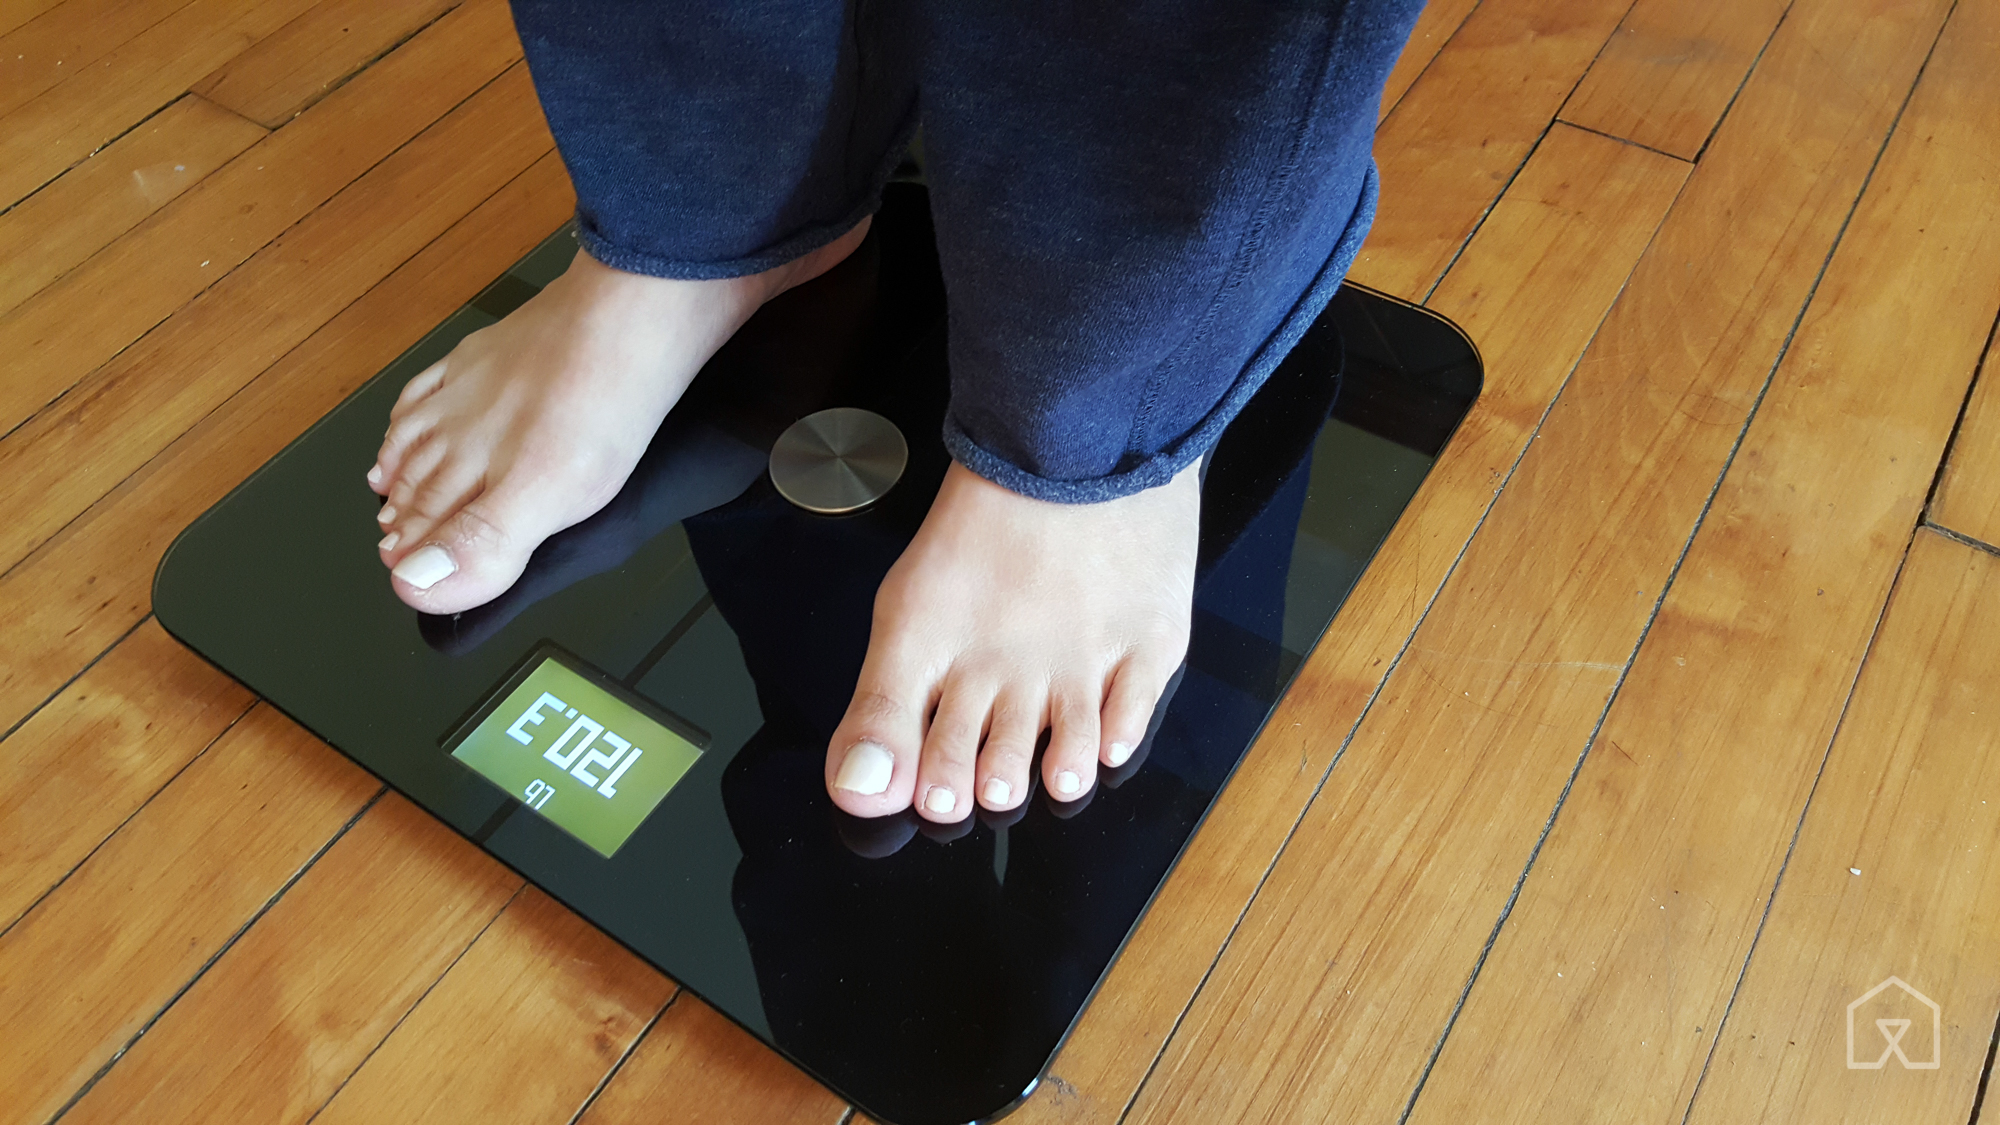 Best accurate bathroom scales - Our Pick For Smart Scale